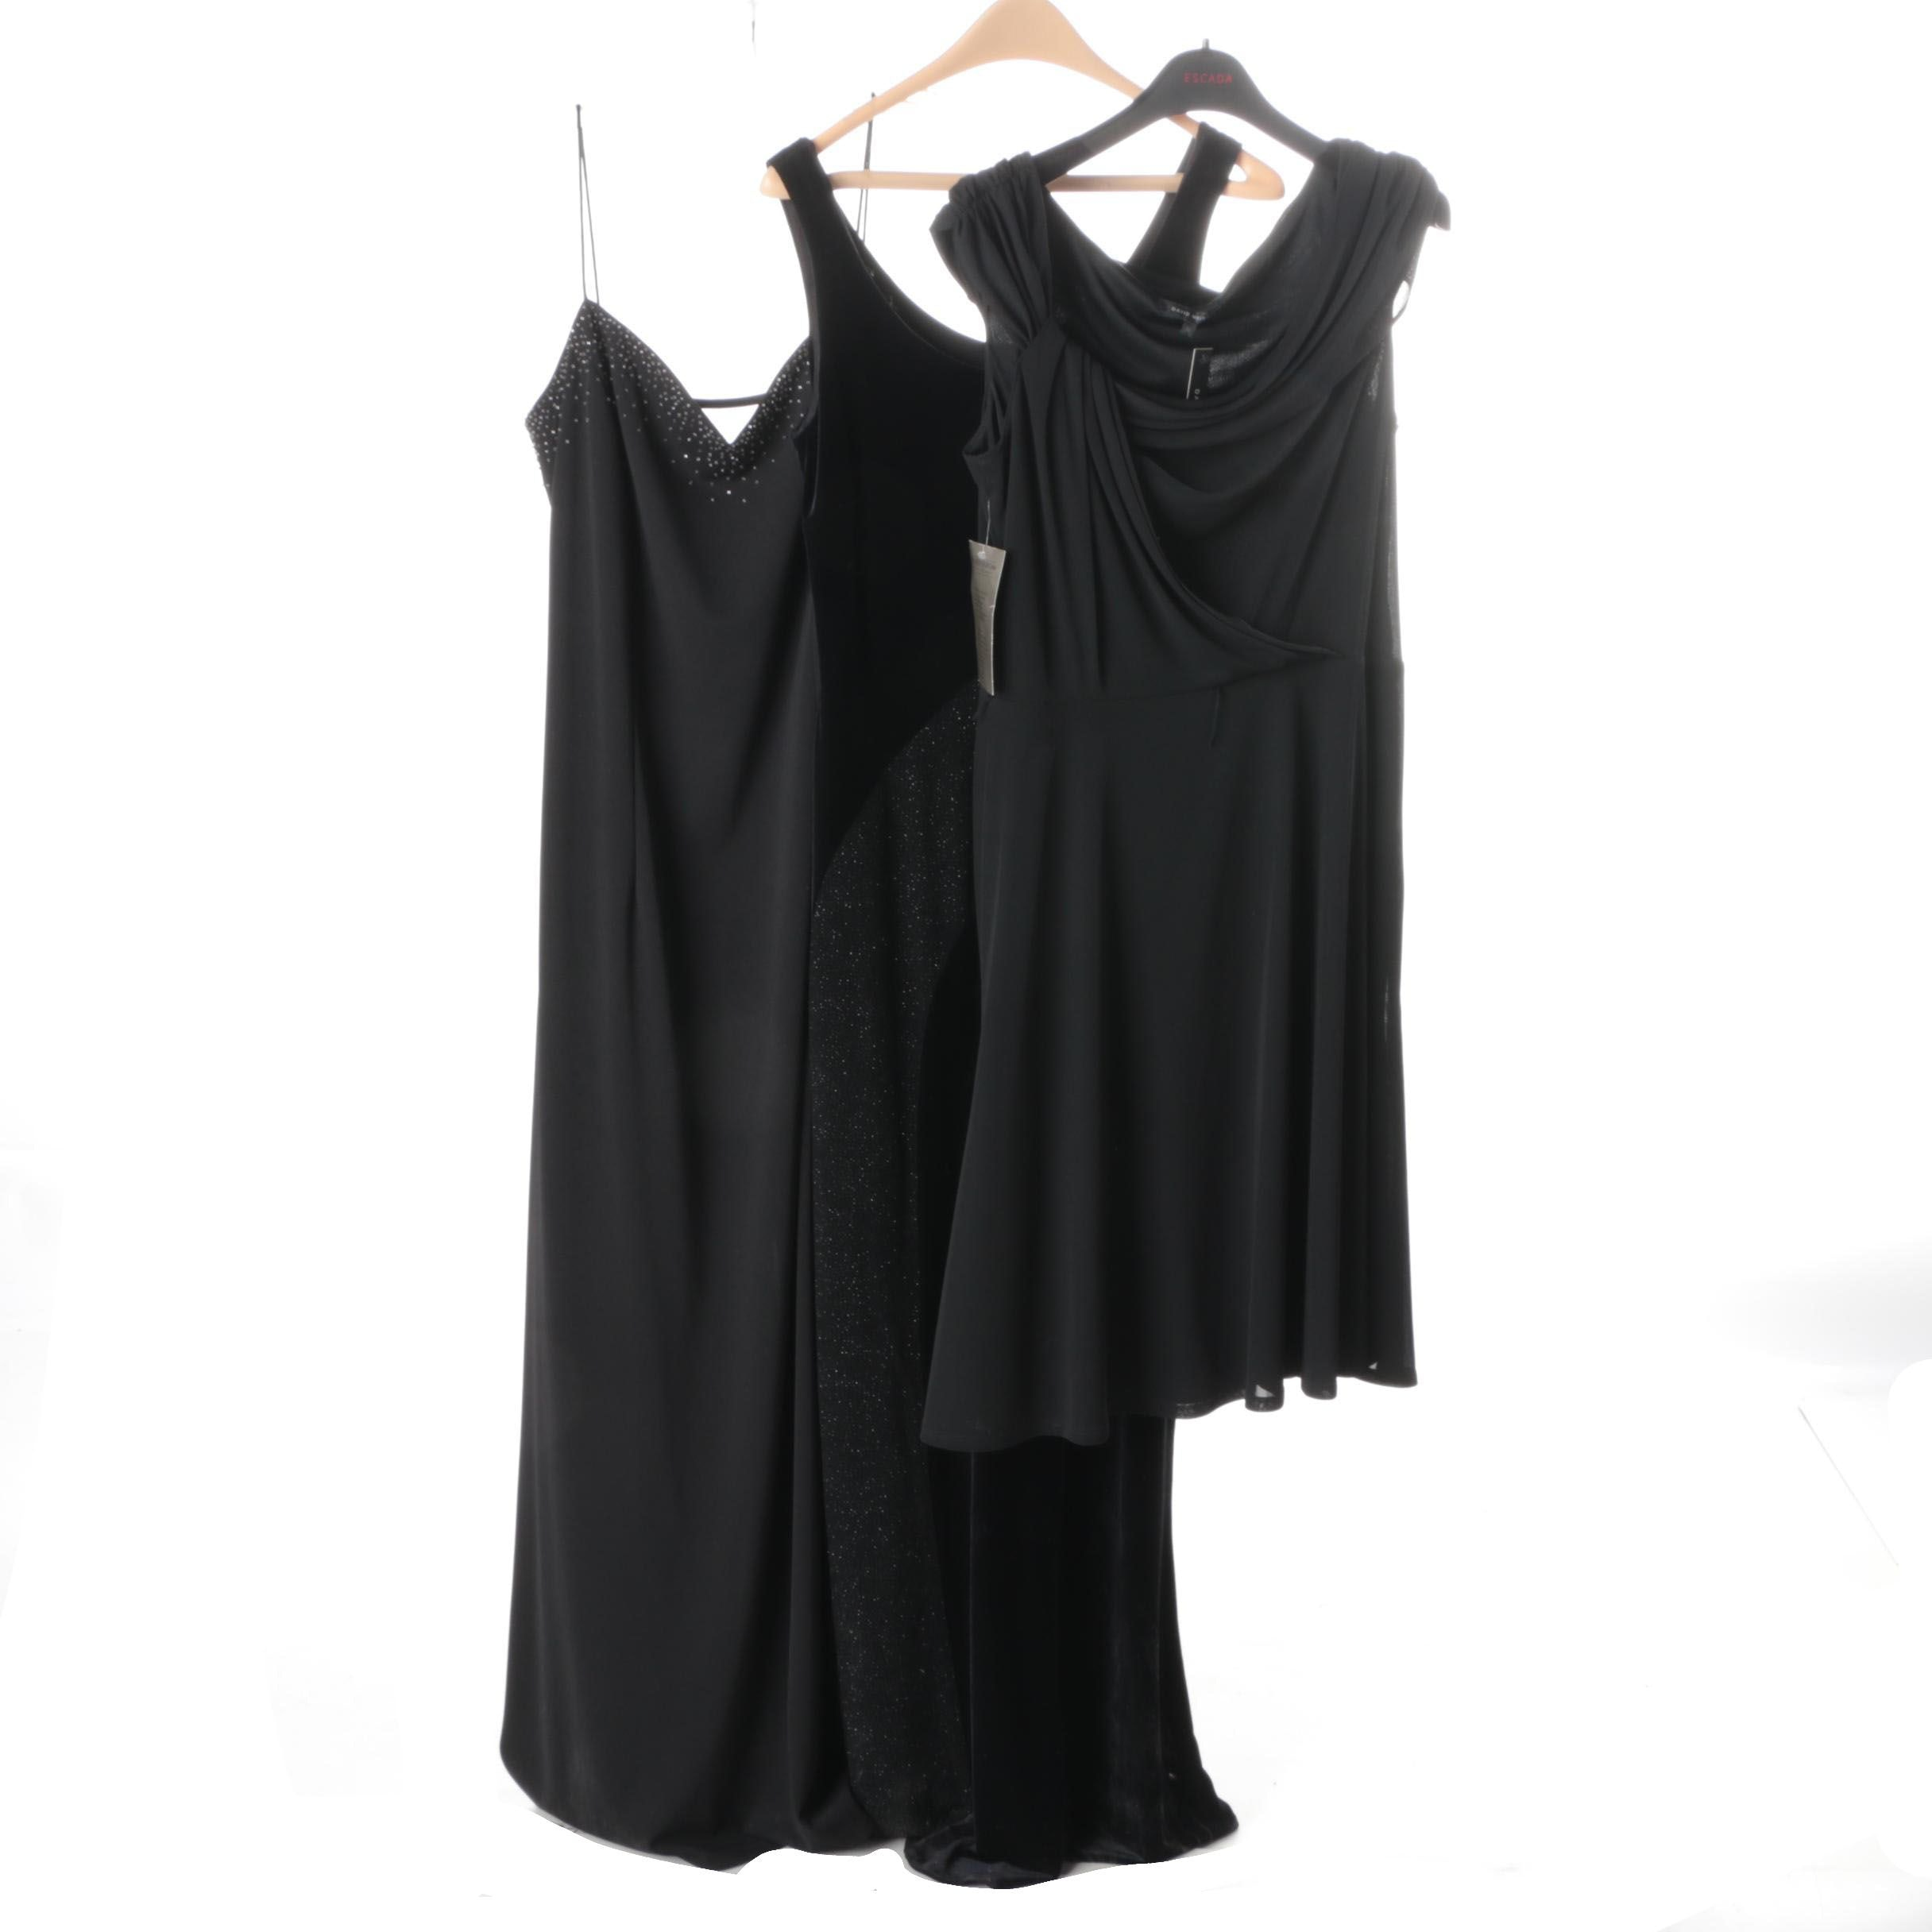 Women's Black Cocktail Dresses Including David Meister